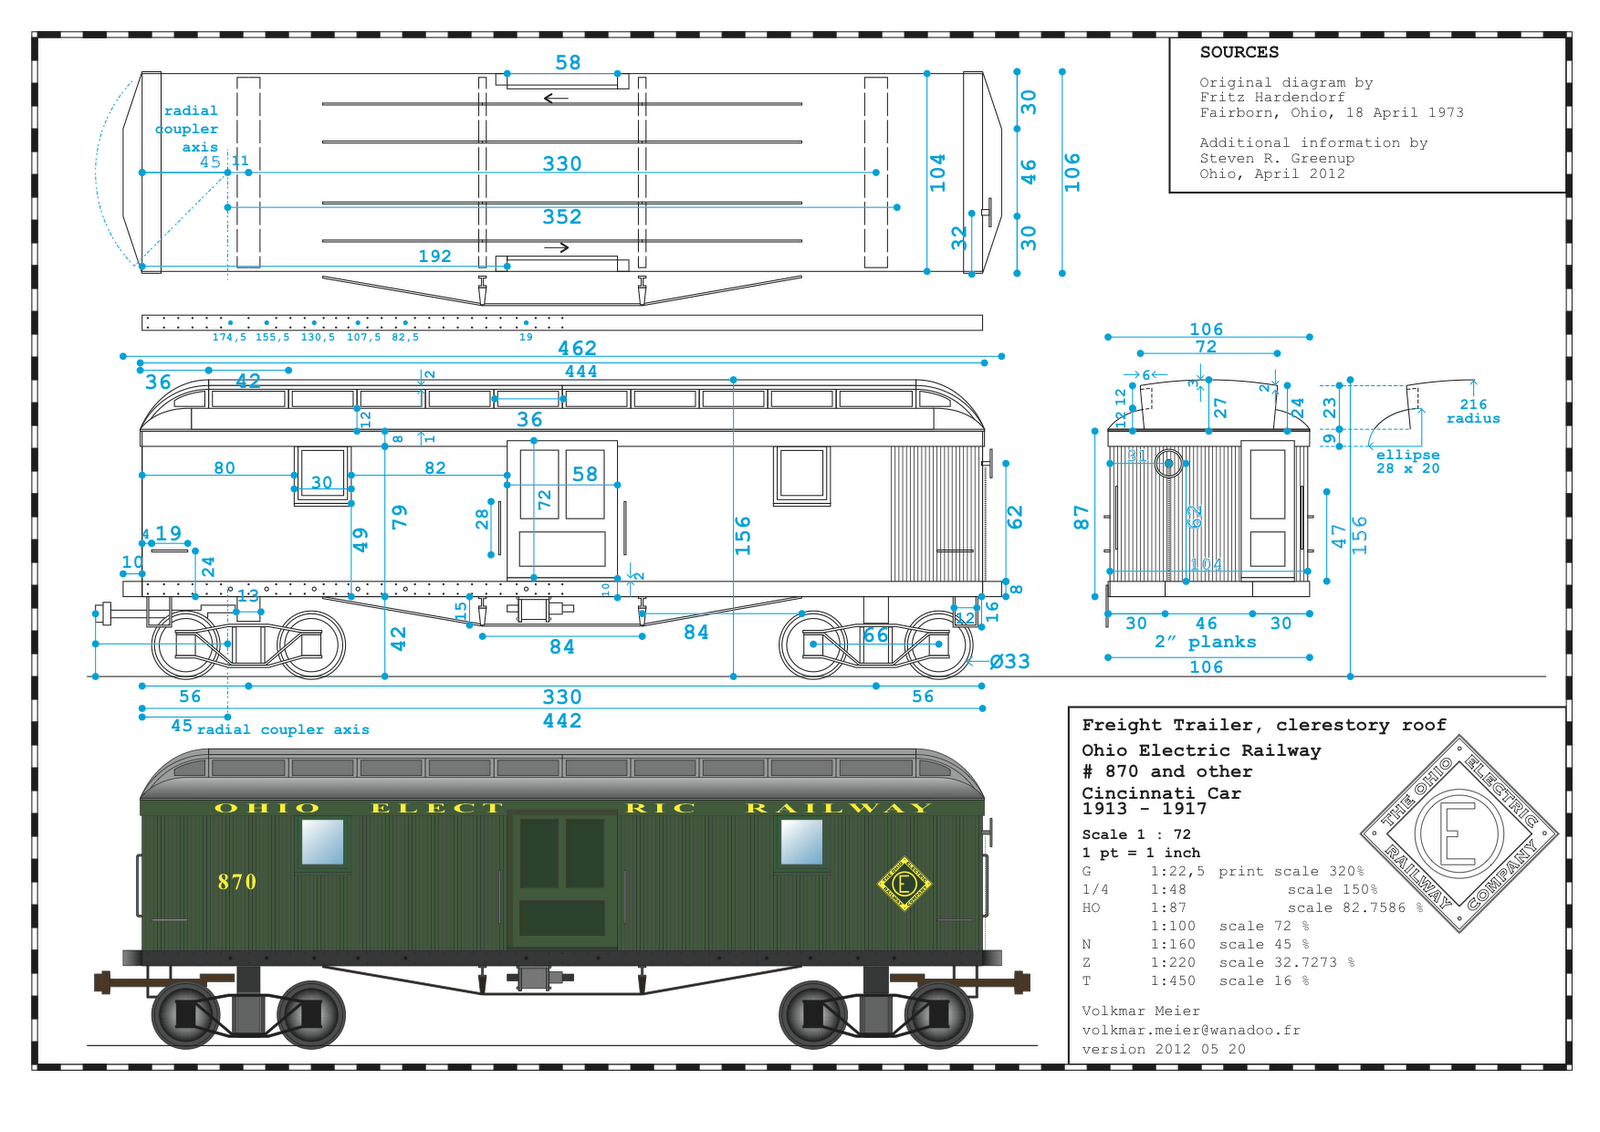 auto train diagram guitar wire interurban railways may 2012